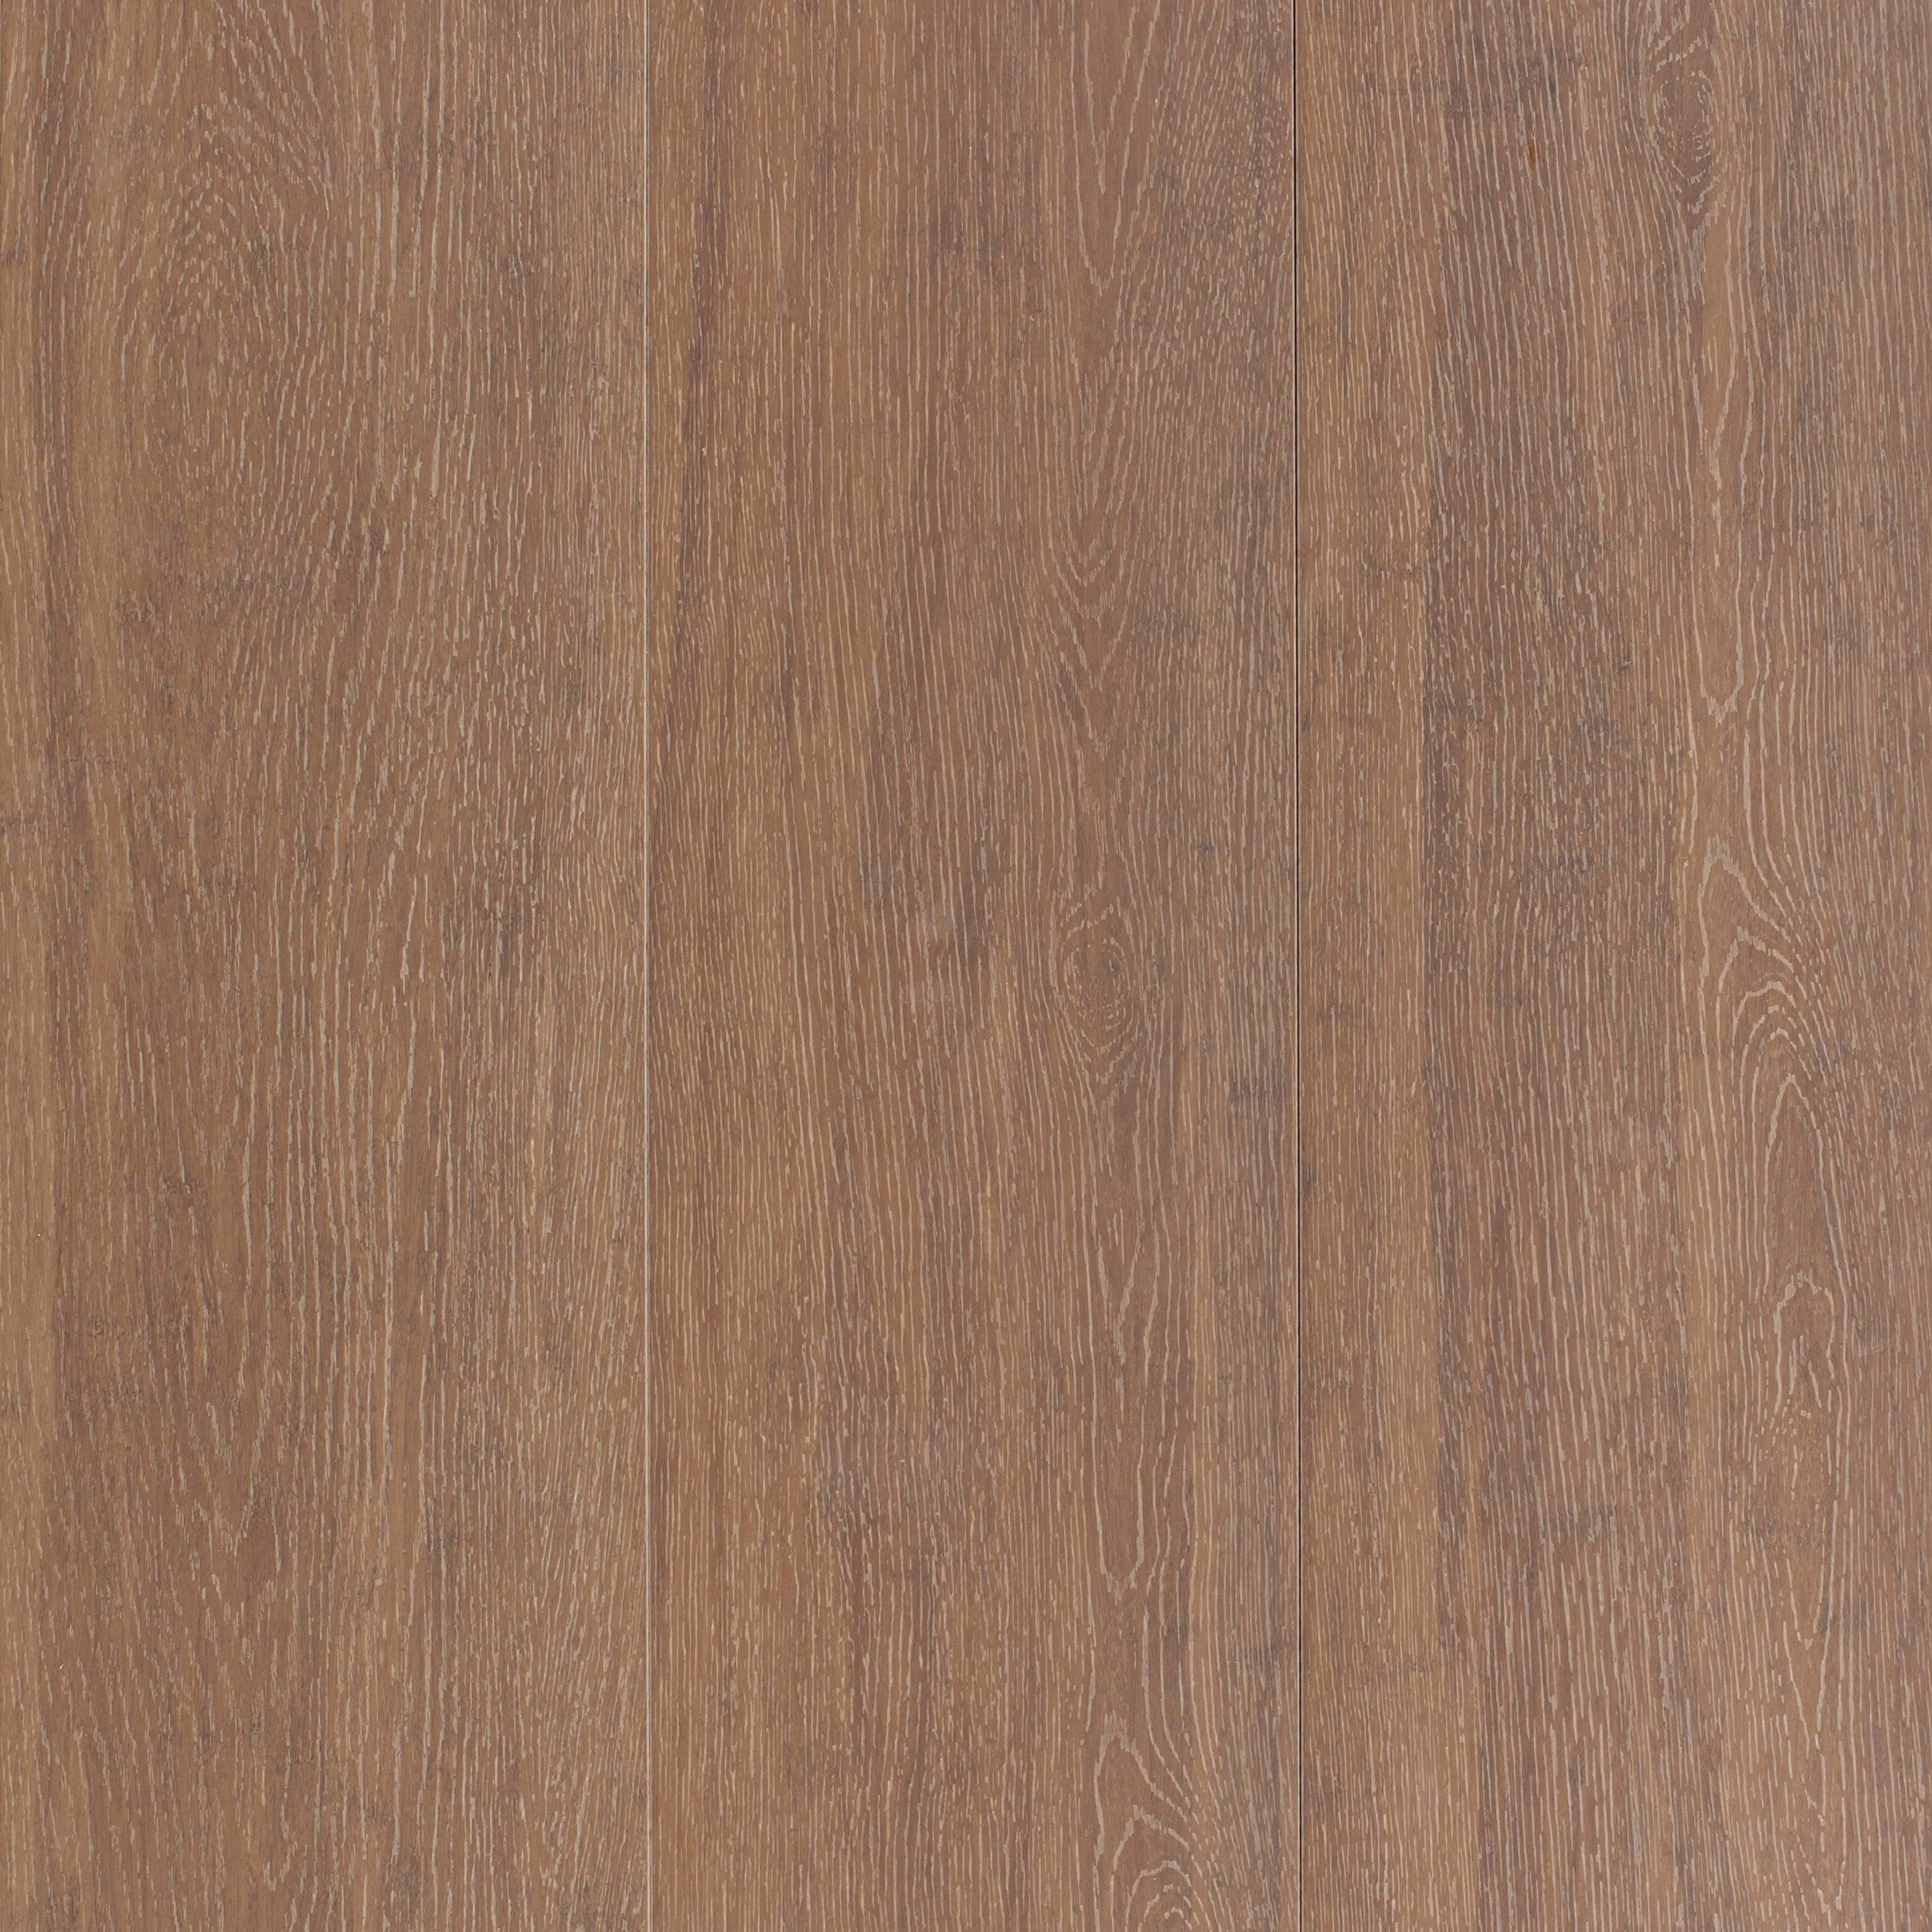 Oak Distressed Solid Stranded Bamboo